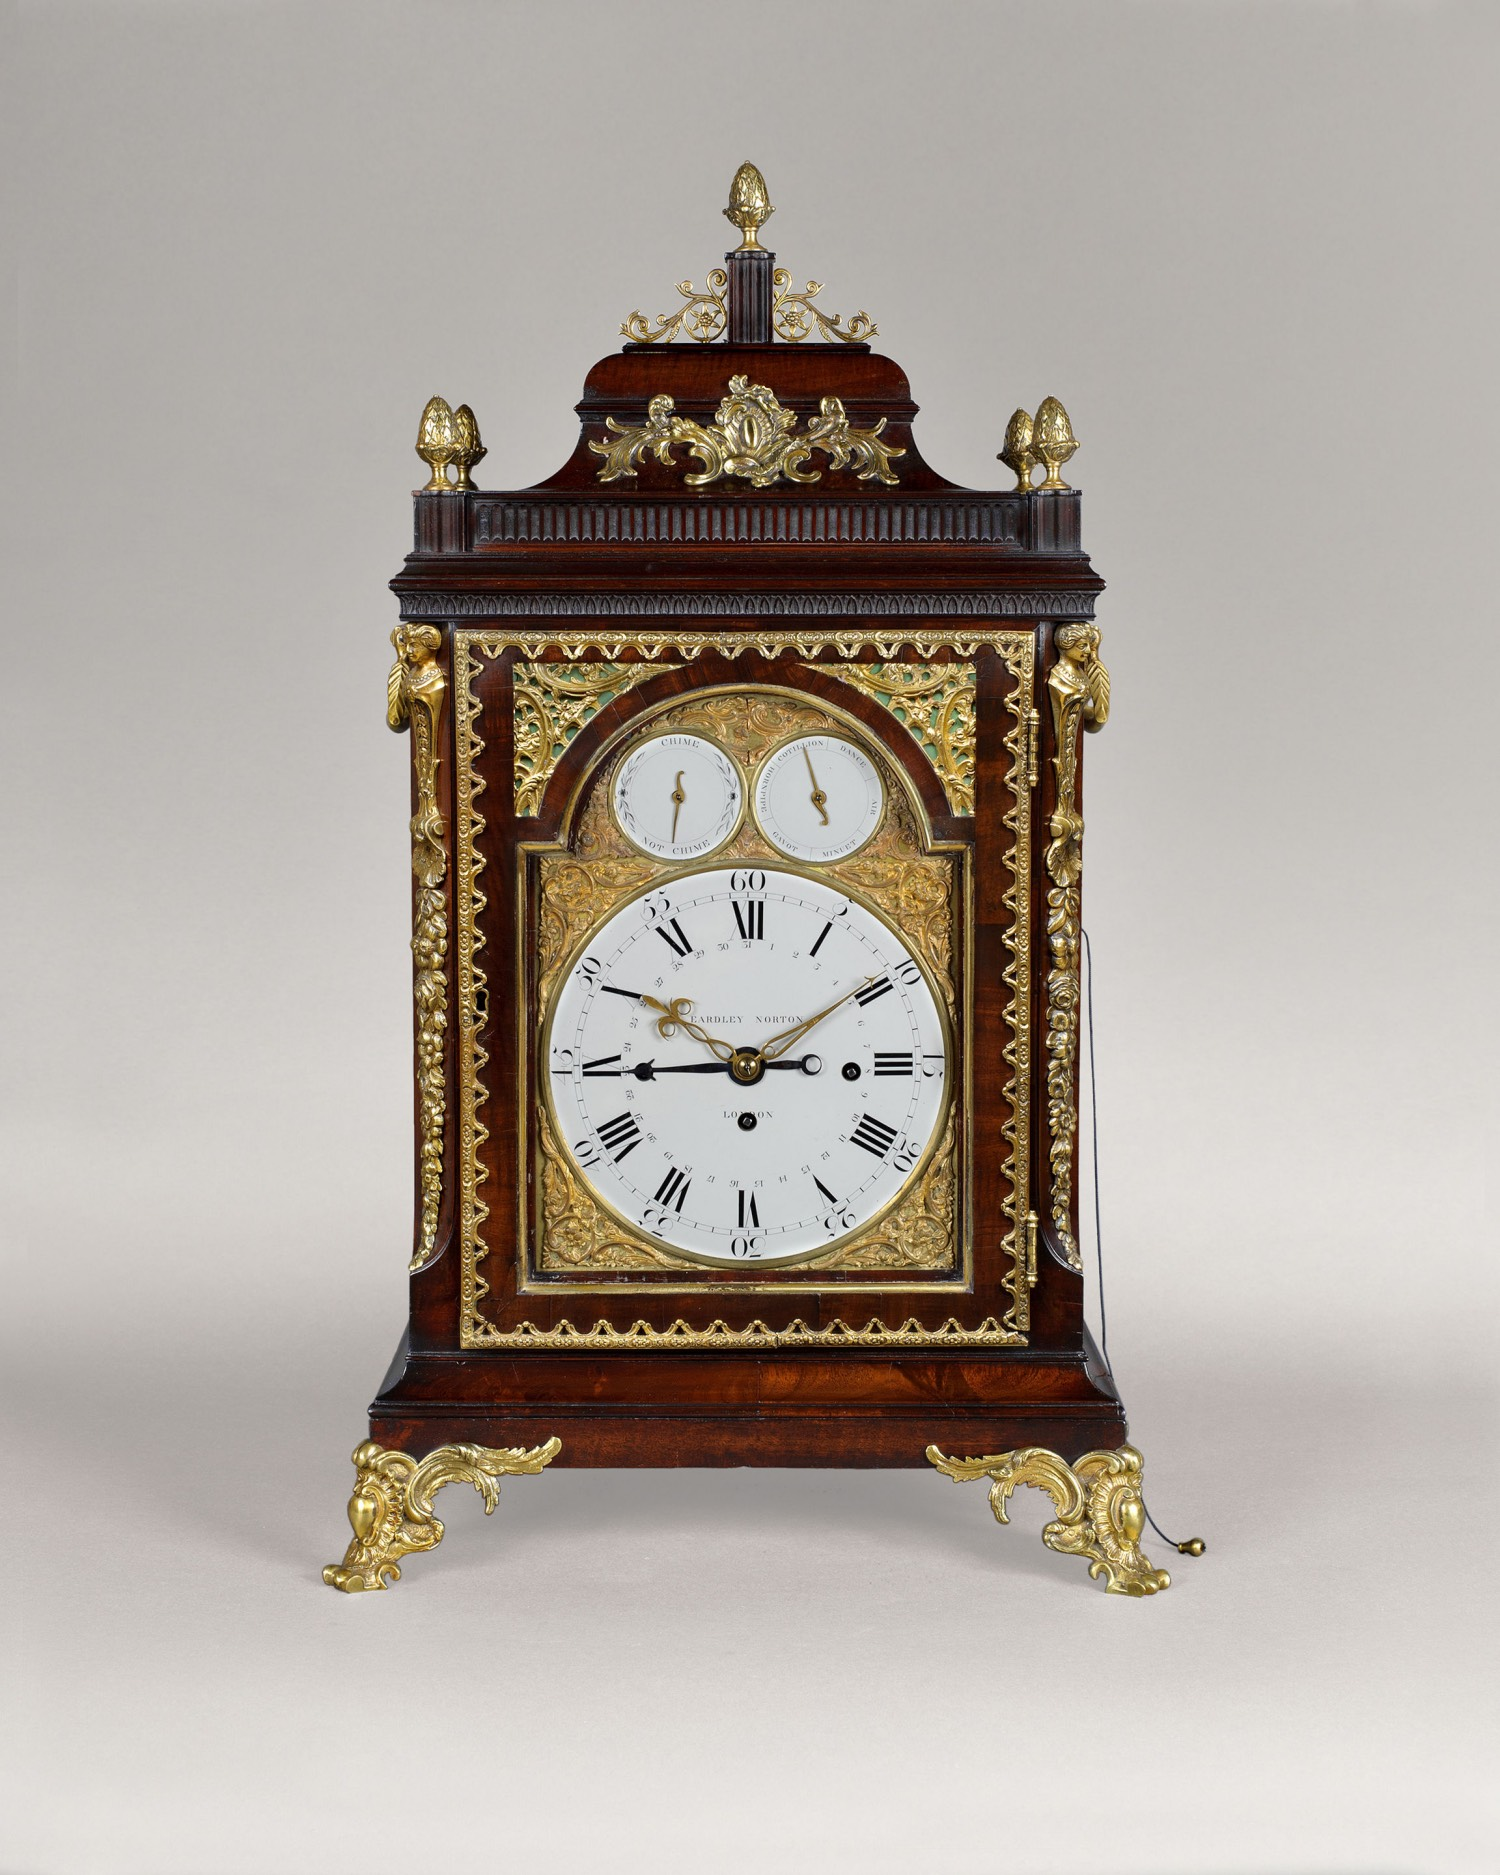 EARDLEY NORTON. A FINE GEORGE III PERIOD MUSICAL TABLE CLOCK